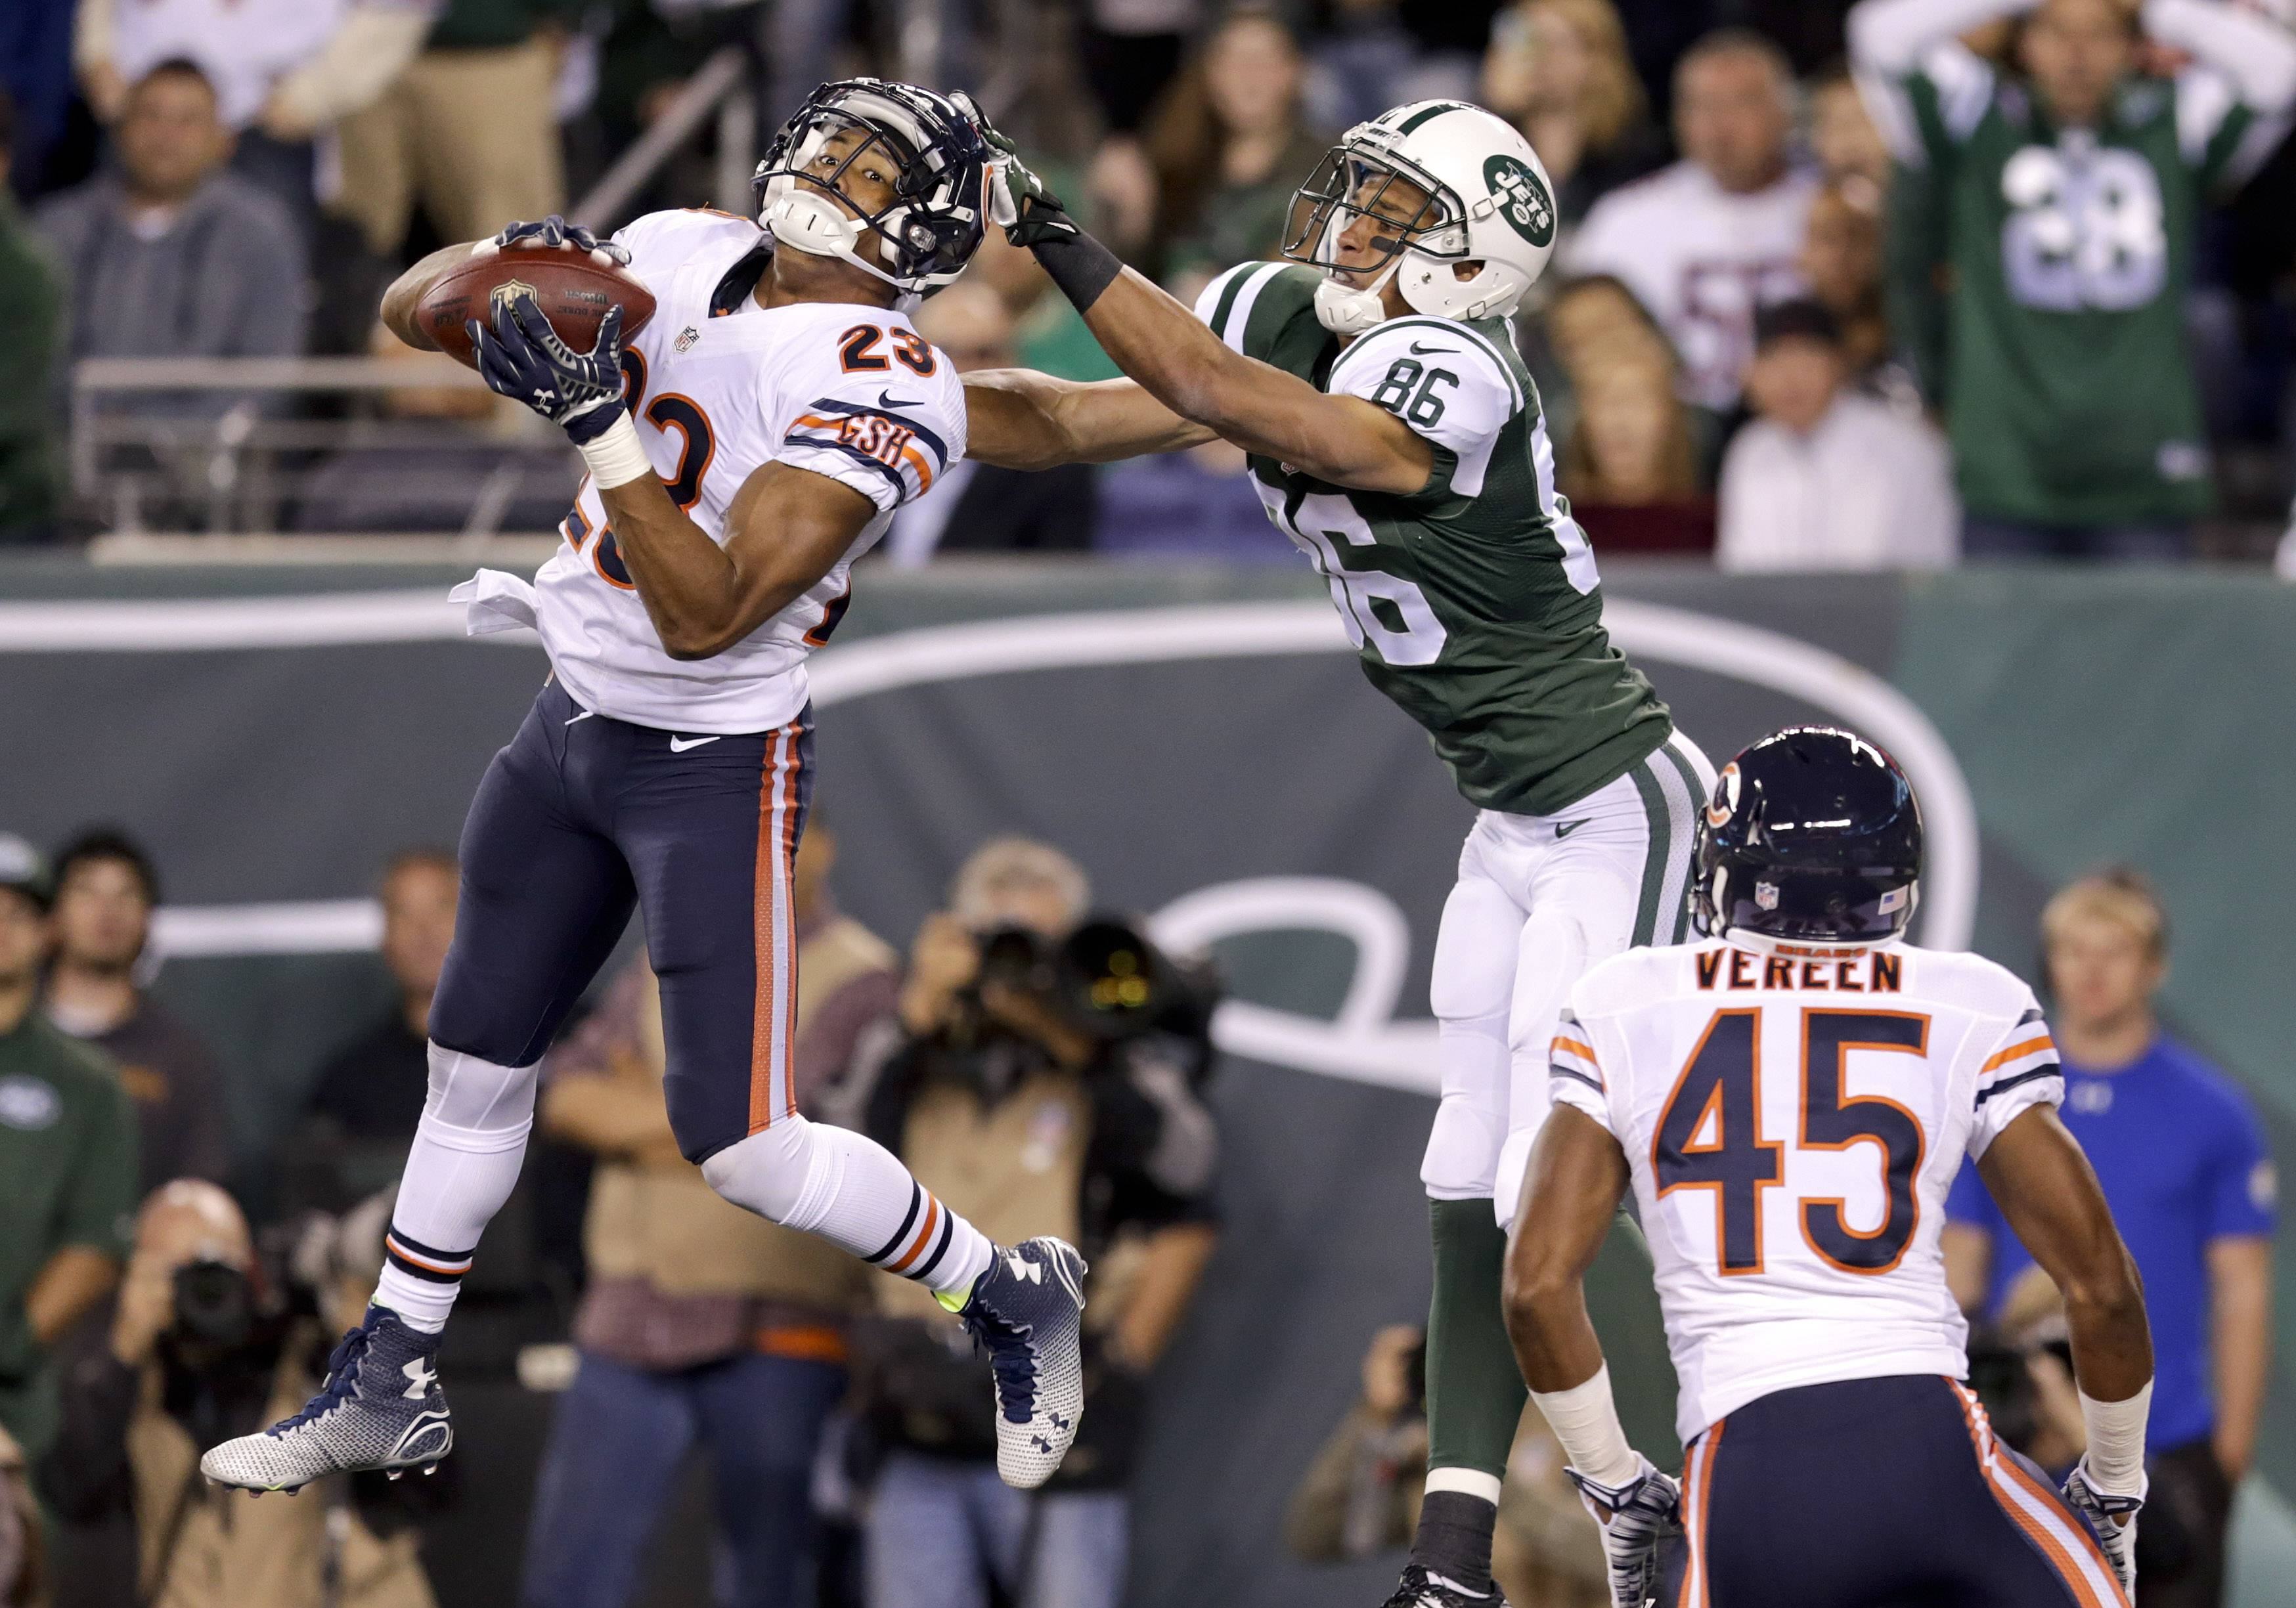 Look who was one of the Bears' stars again! Bears cornerback Kyle Fuller intercepts a pass in the end zone intended for New York Jets wide receiver David Nelson (86) in the third quarter last night in New Jersey.